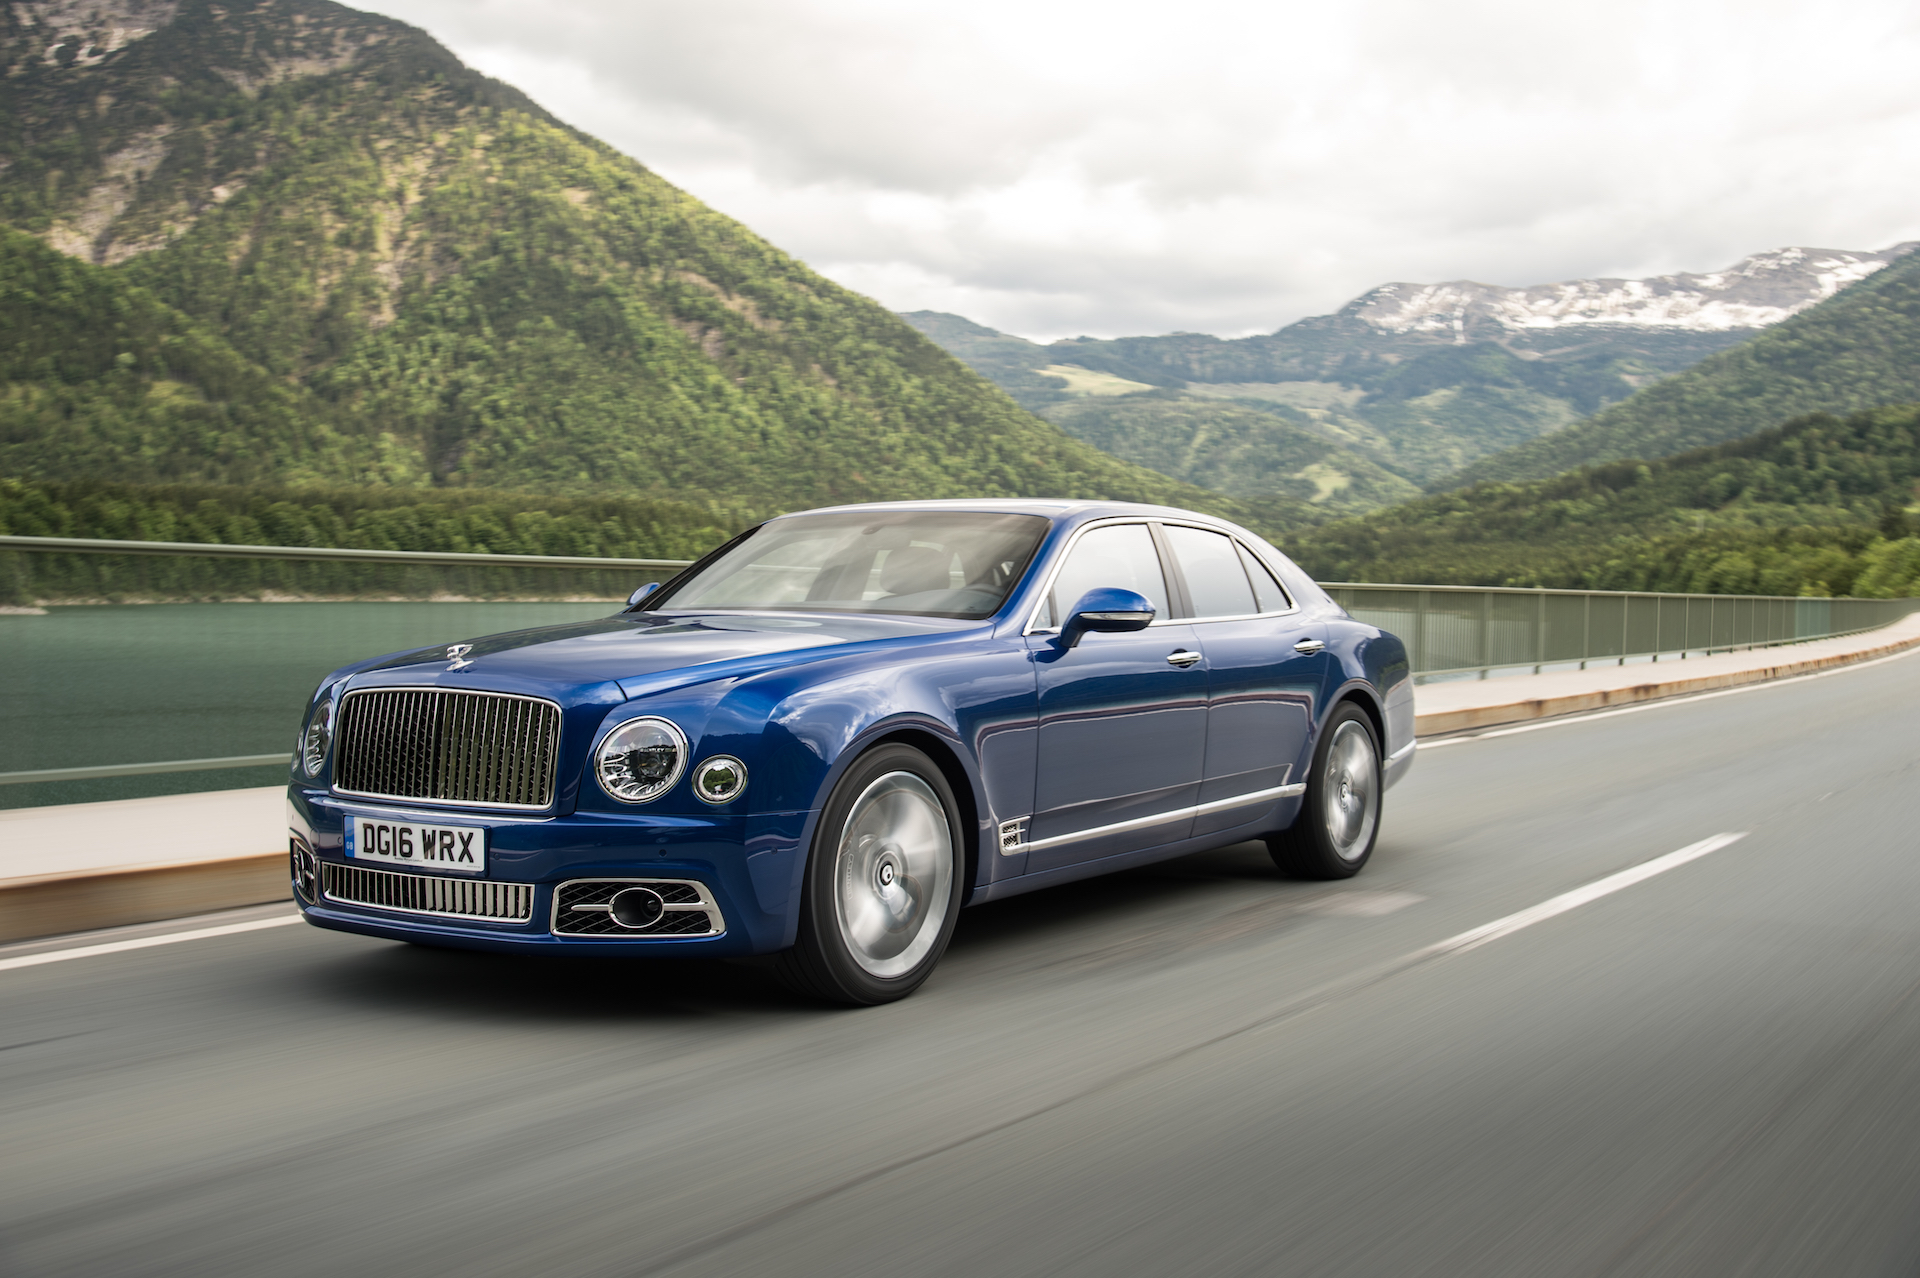 2017 Bentley Mulsanne, Deployable Tire Spikes, Viper To